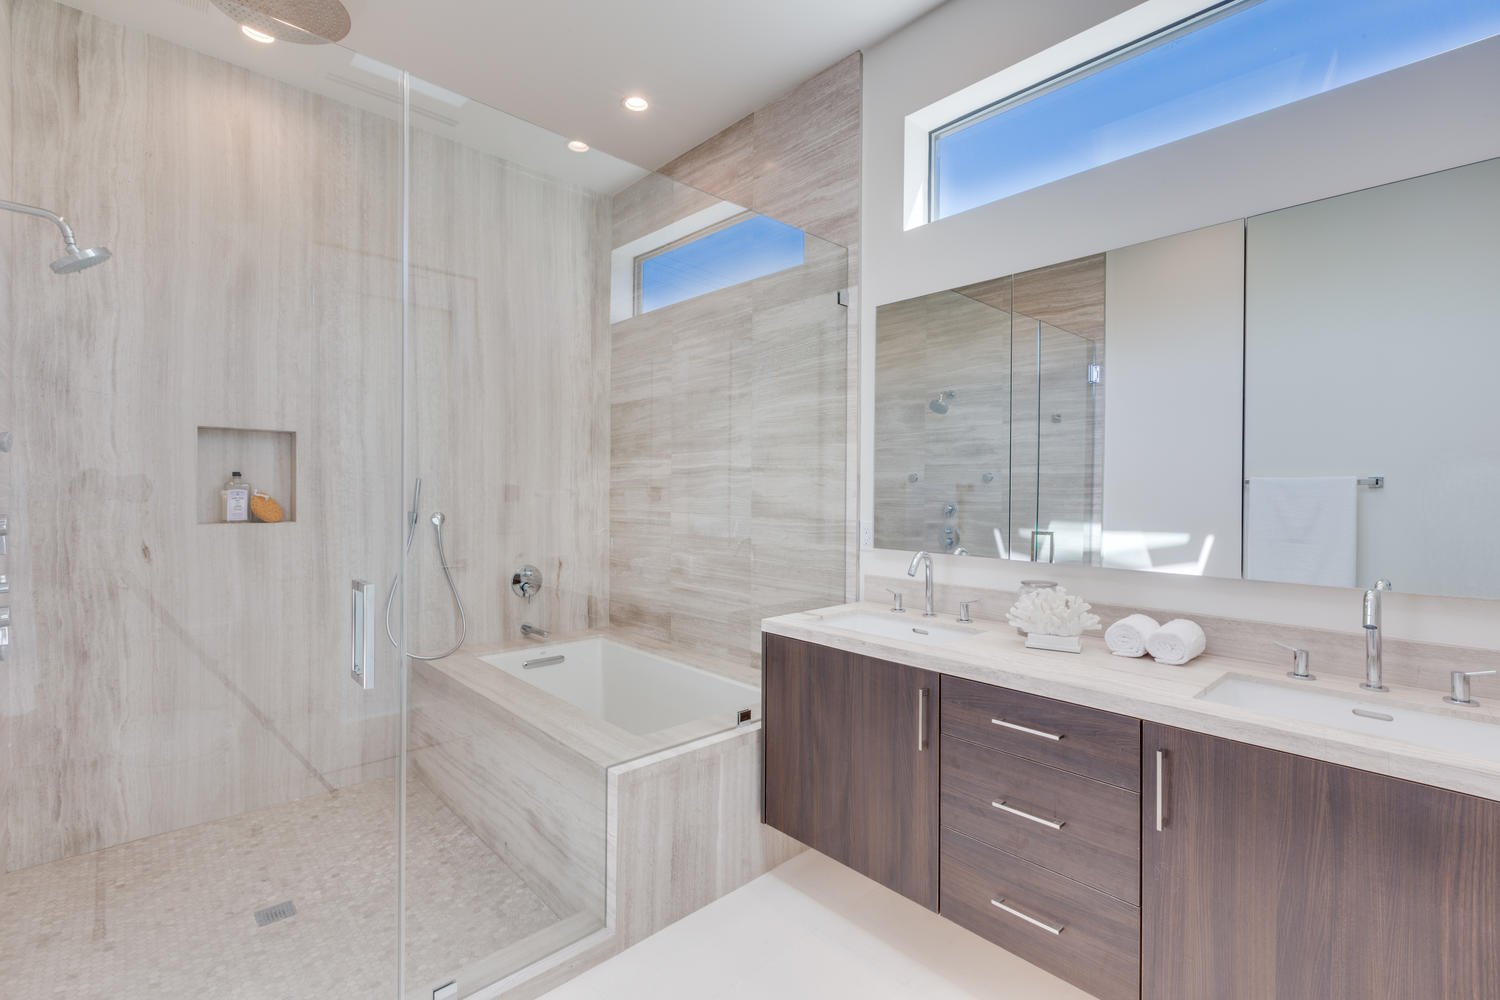 Bath, Drop In, Limestone, Marble, Drop In, Soaking, Full, Enclosed, Ceiling, Recessed, Stone Tile, and One Piece Master Bathroom  Best Bath Drop In Soaking Photos from The Rosewood Residence